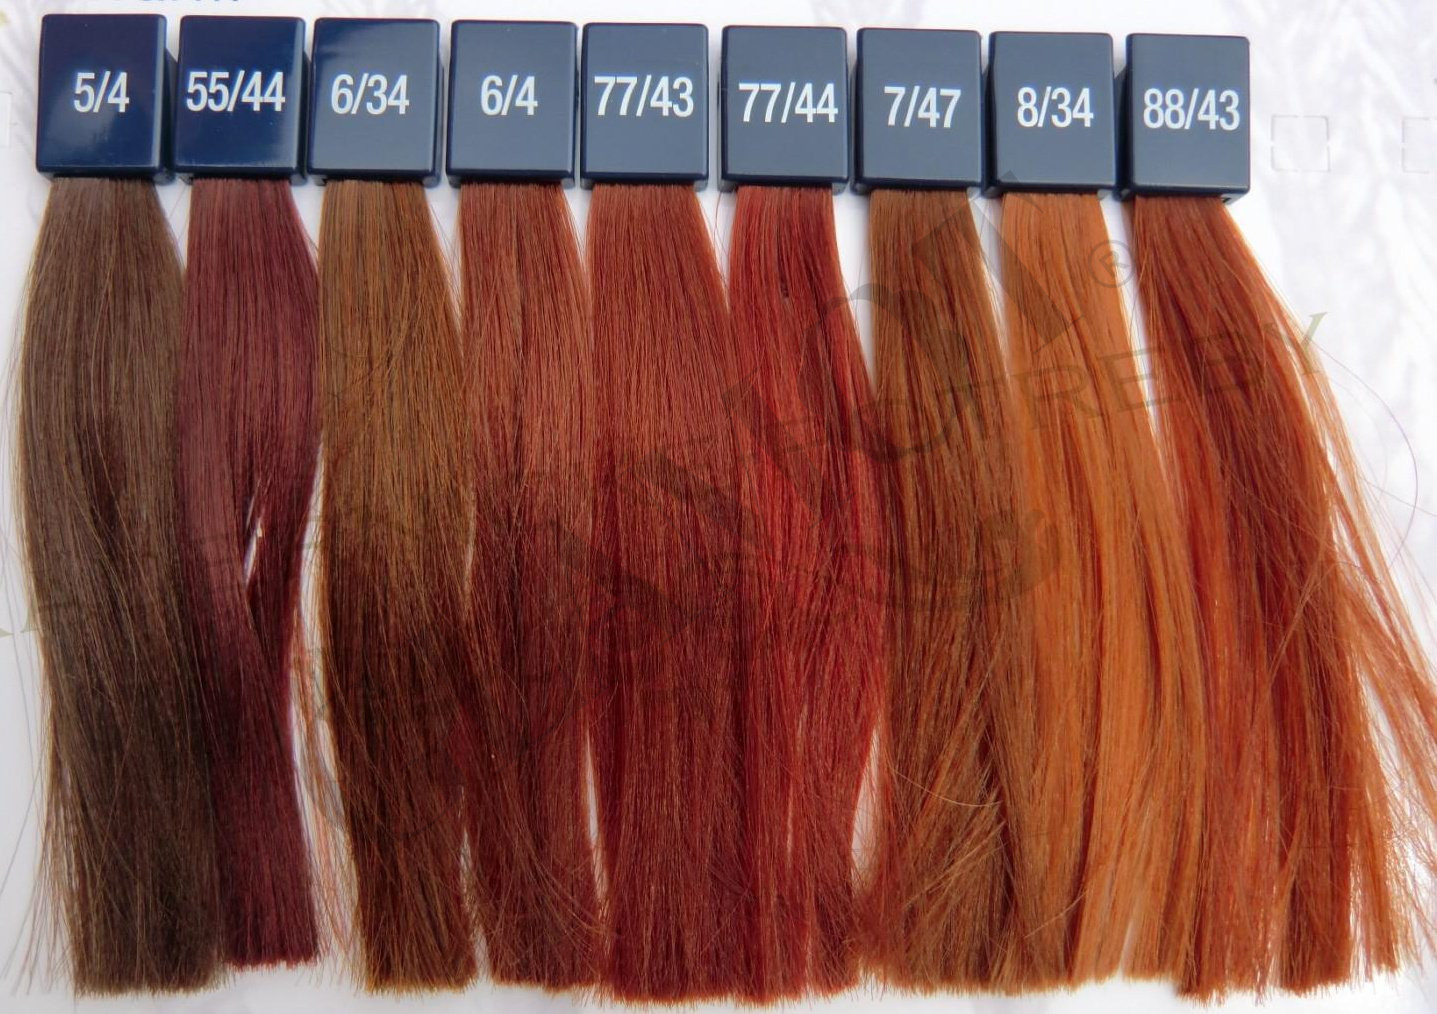 wella professionals koleston perfect vibrant reds hair colour glamotcom - Coloration Wella Koleston